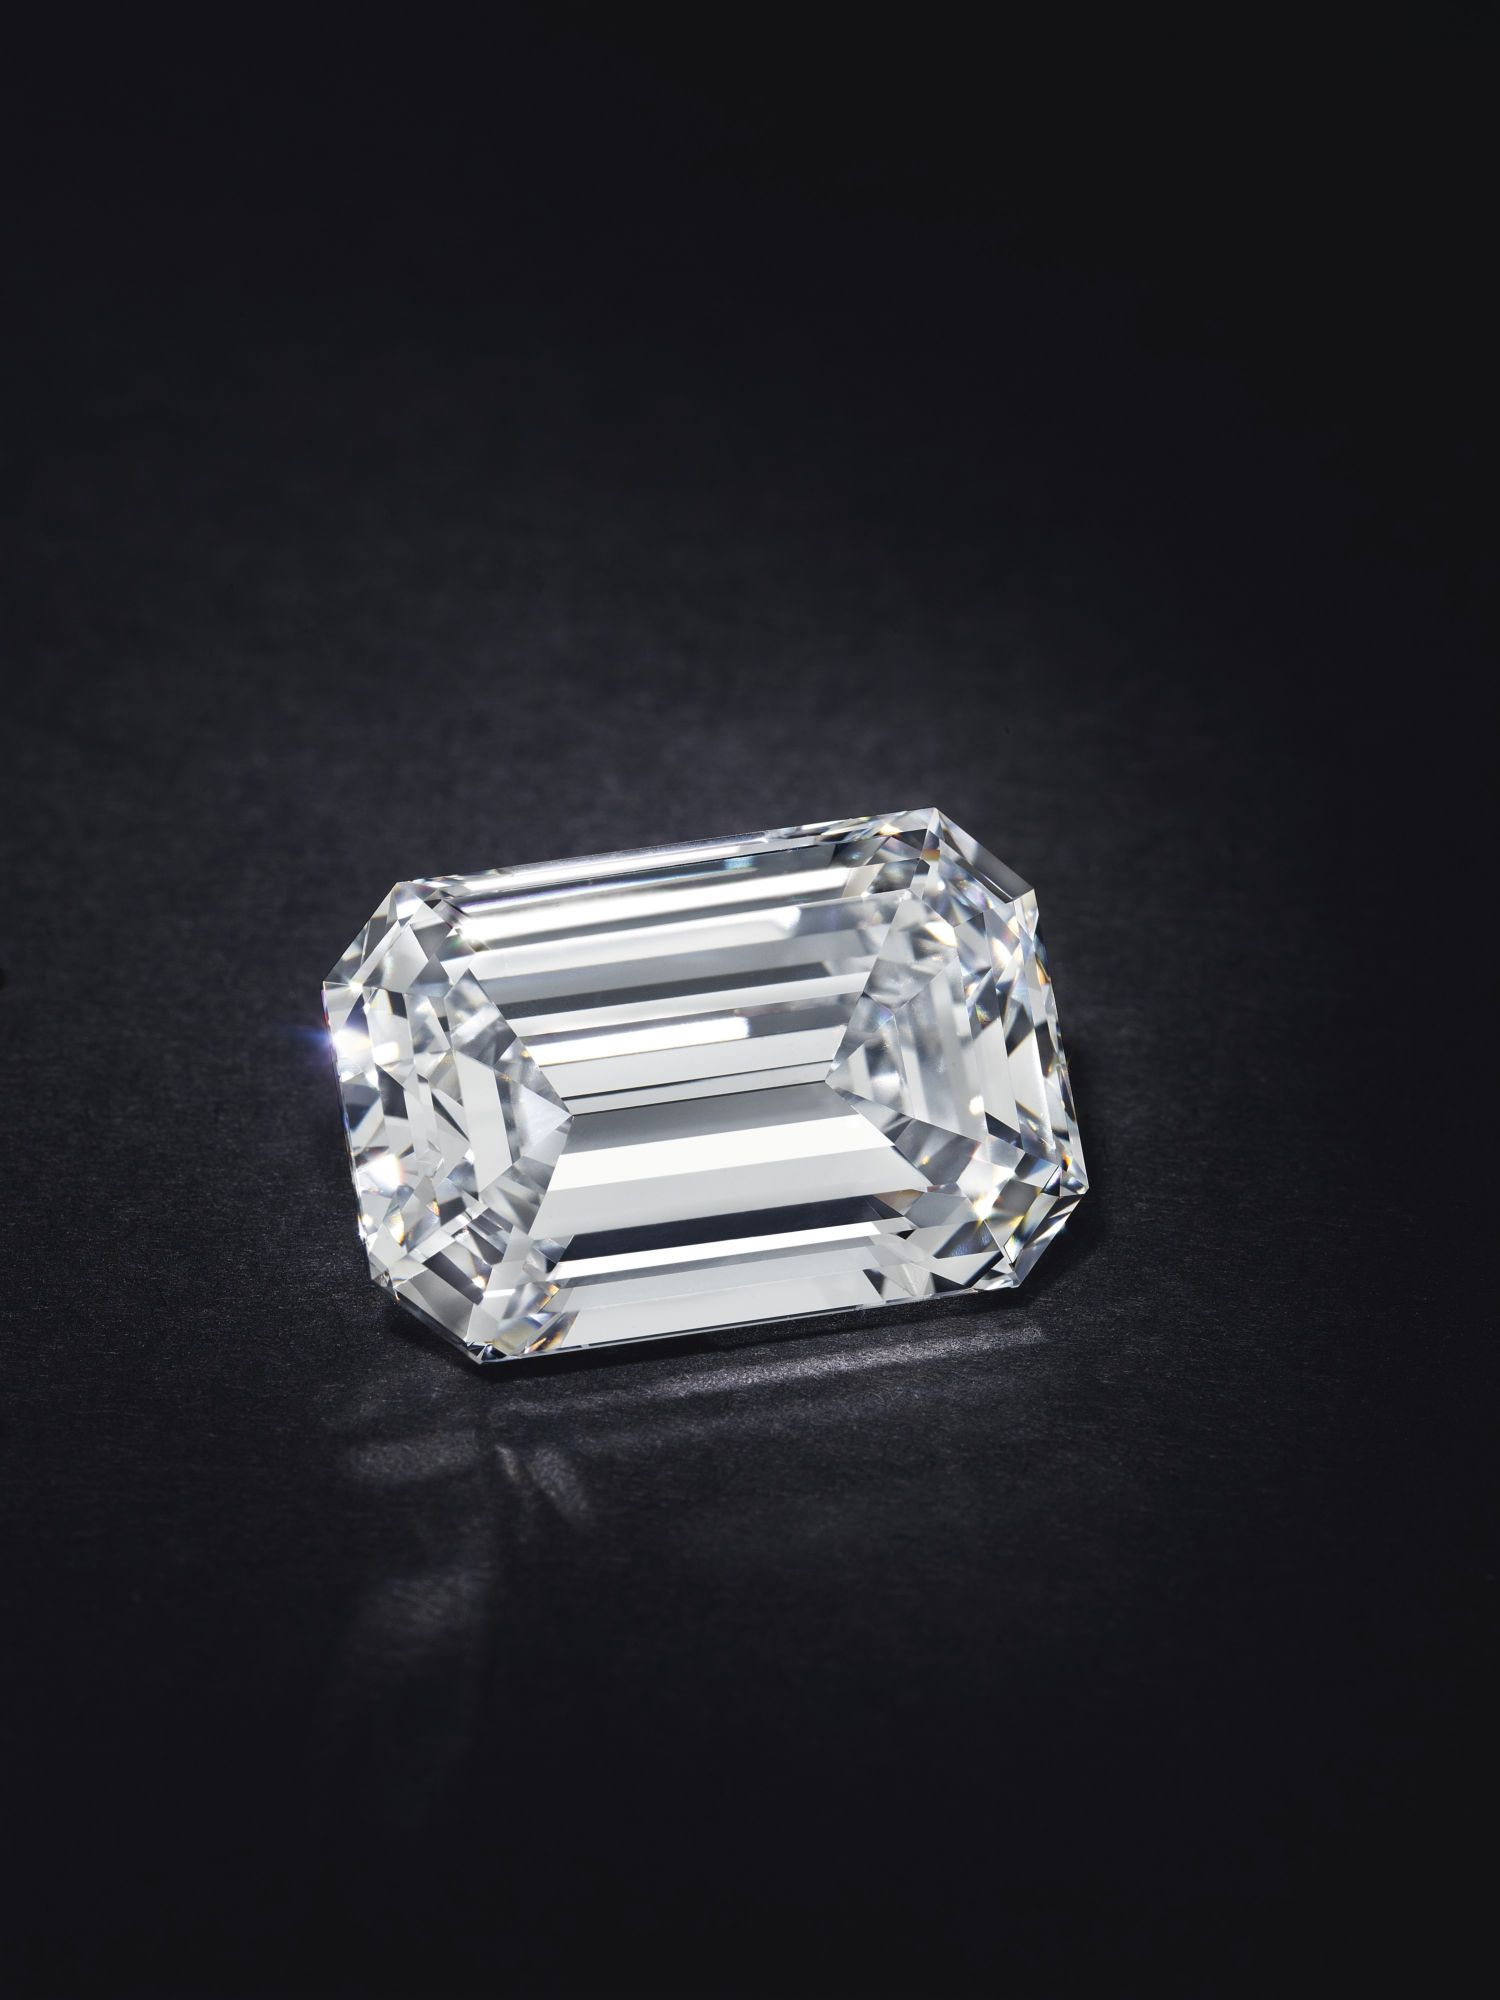 At US$2.1 Million, This Is The Most Expensive Diamond Ever Auctioned Online